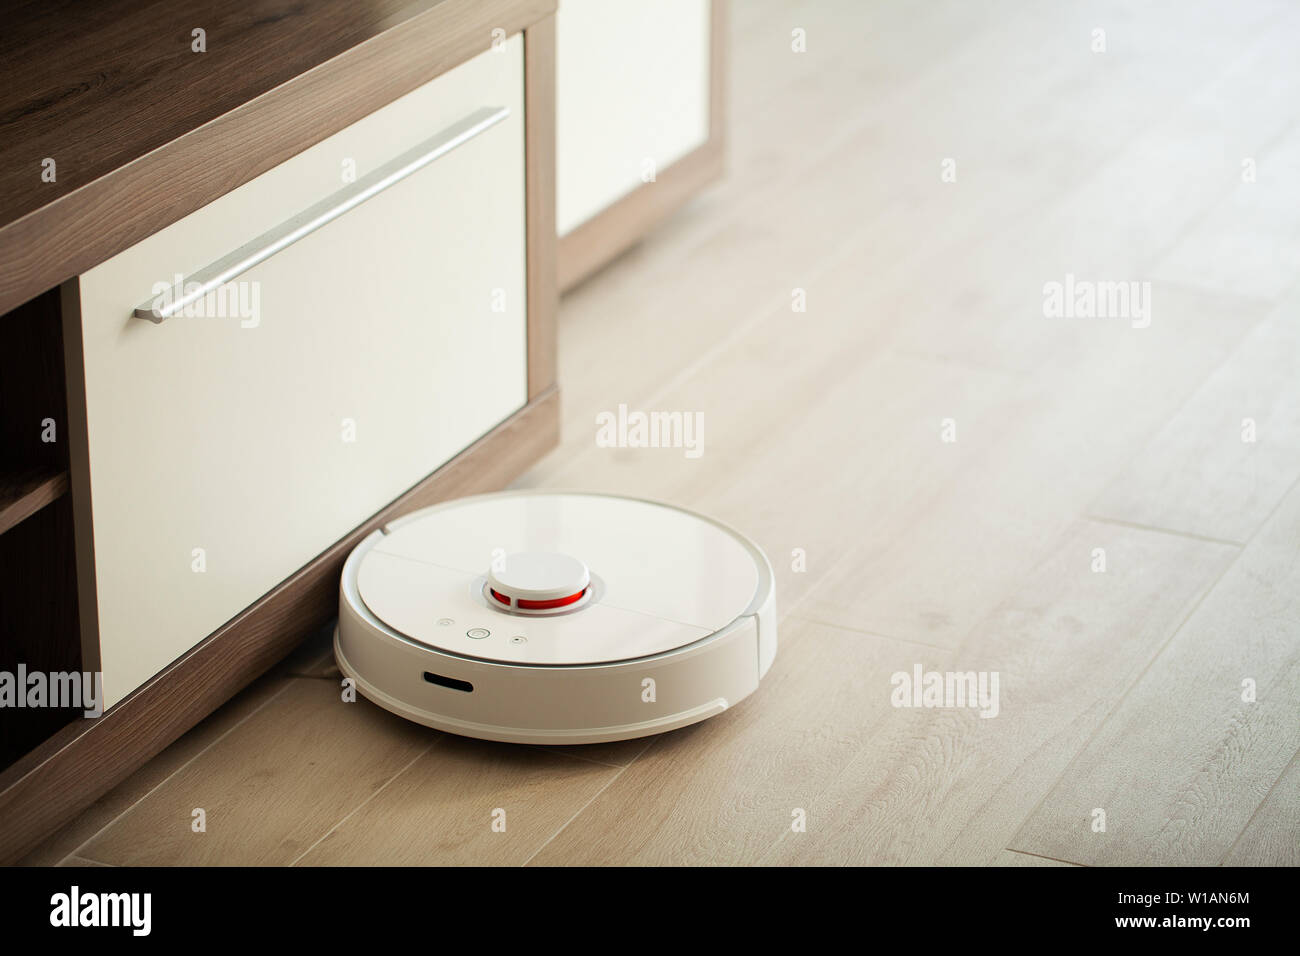 Smart House. Vacuum cleaner robot runs on wood floor in a living room. - Stock Image